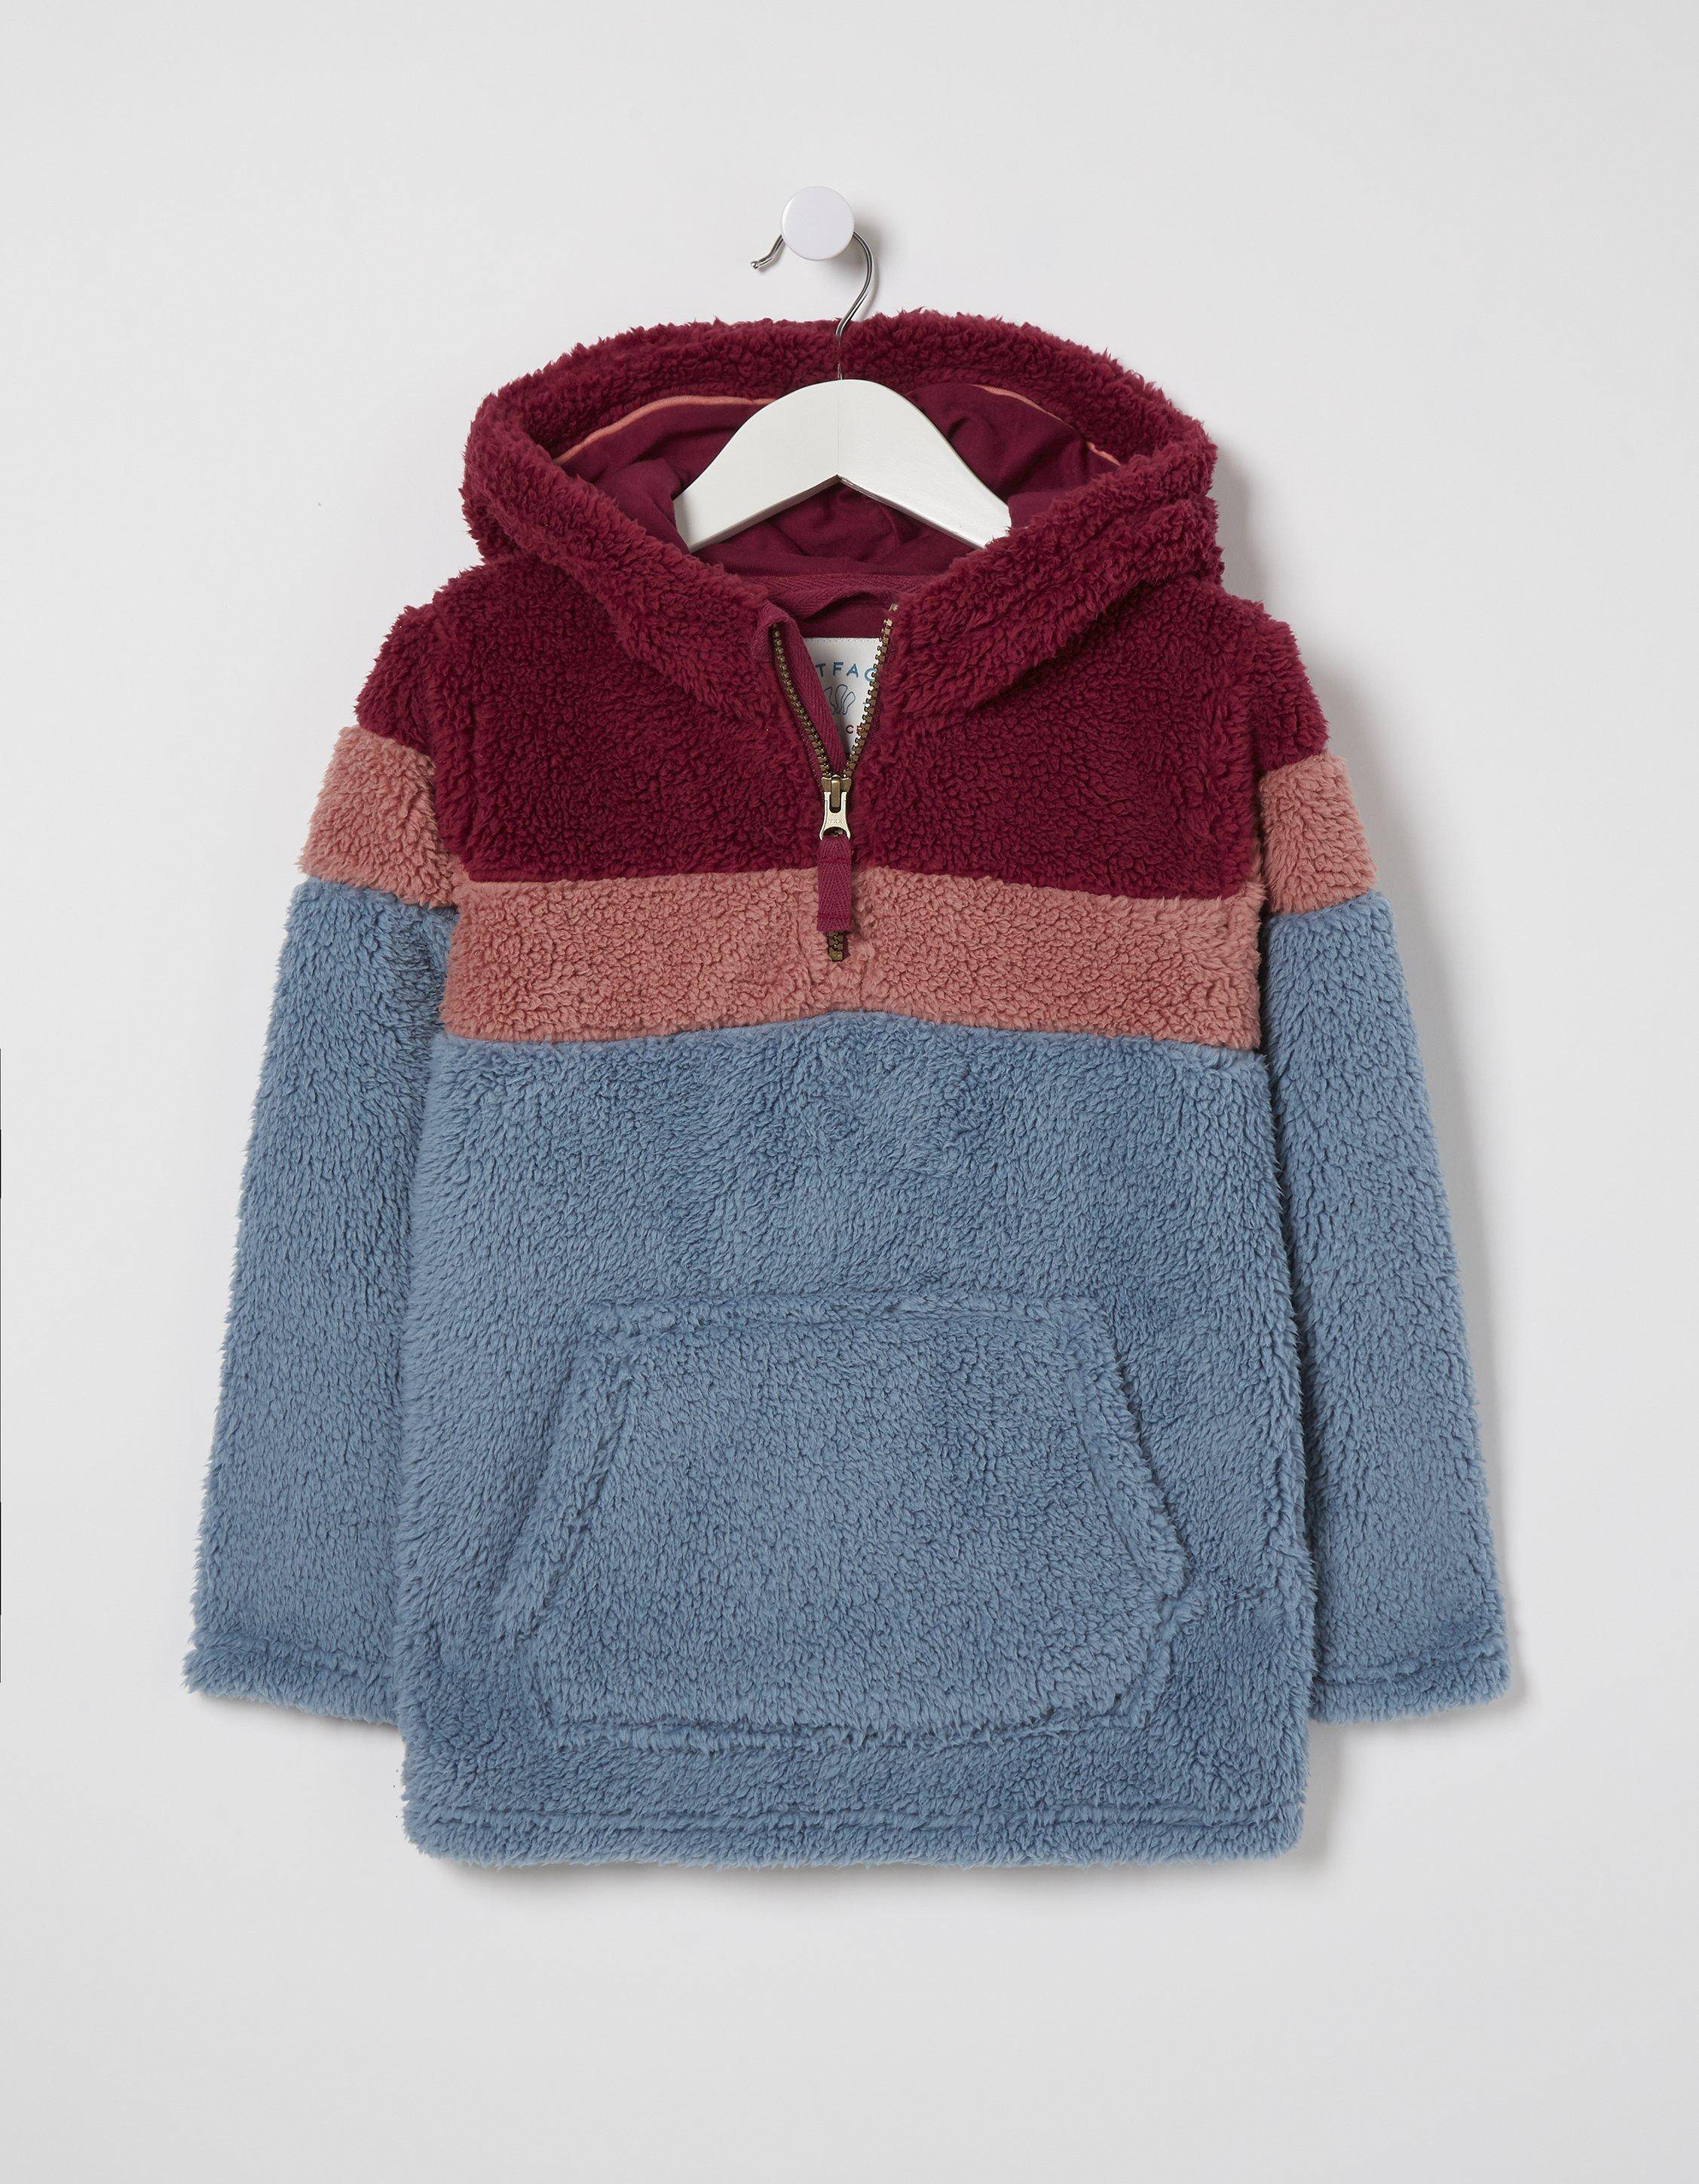 Fat Face Color Block Popover Hoody  - Size: 7-8